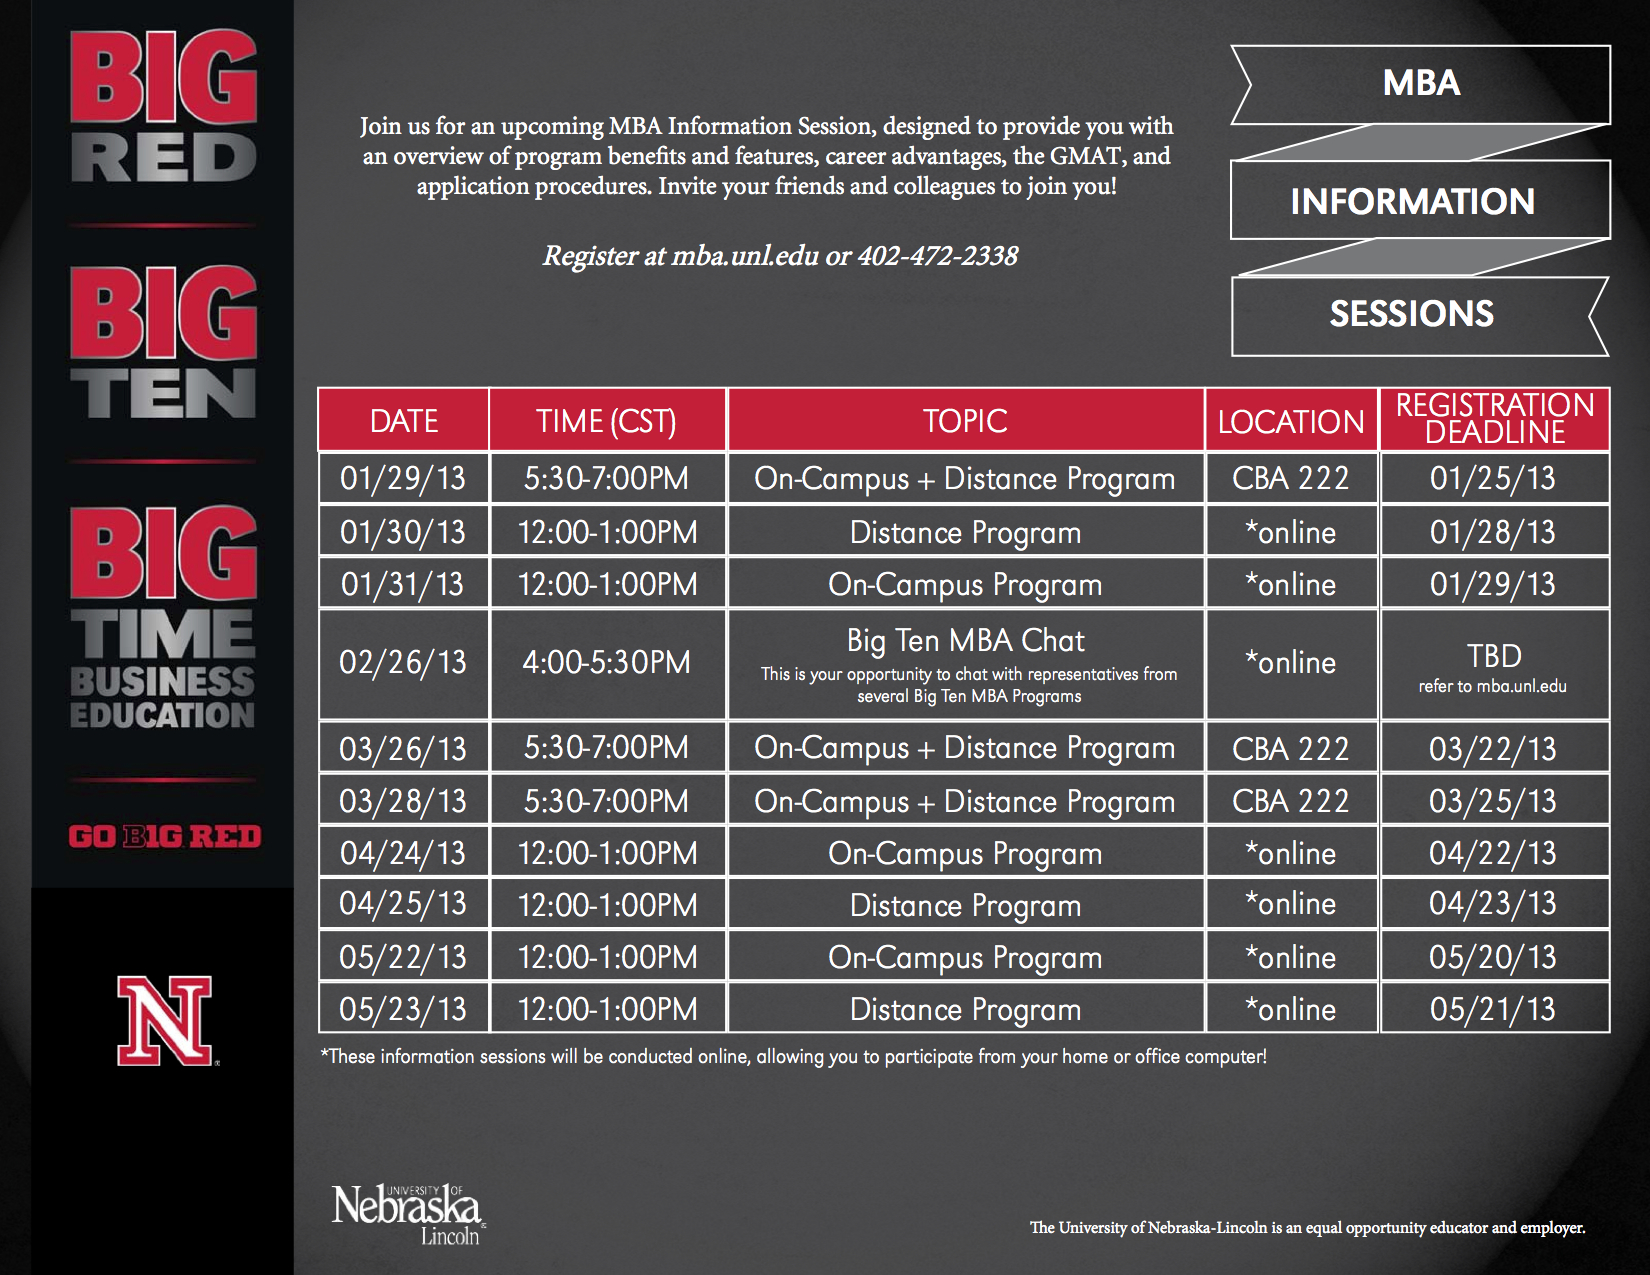 MBA Information Session Dates